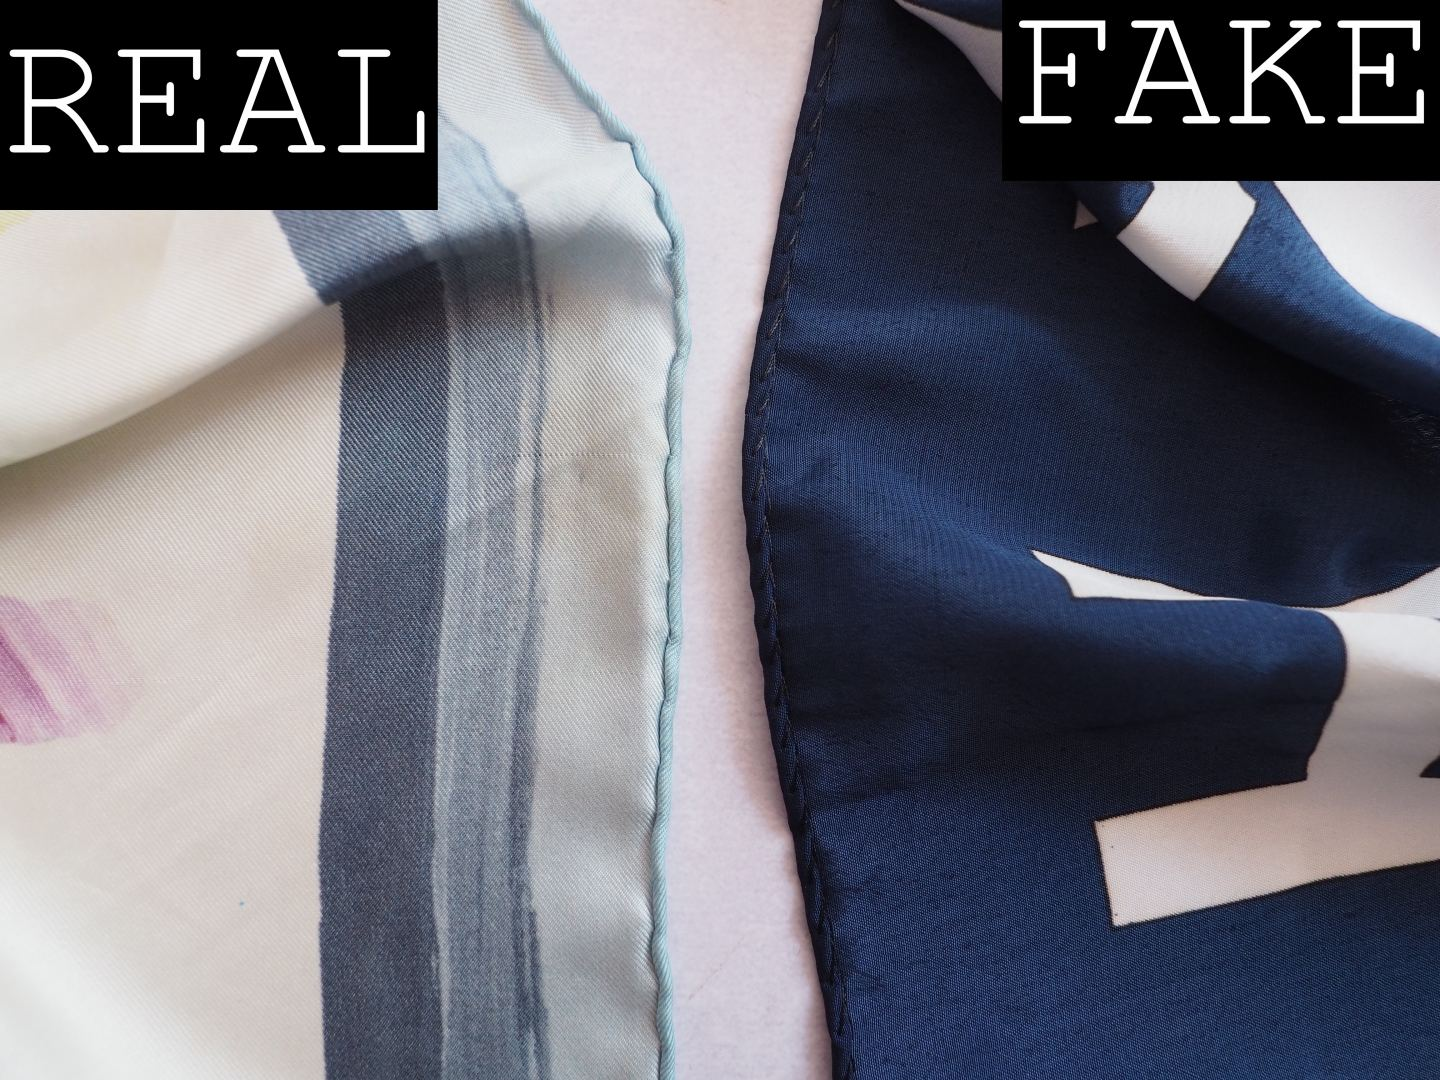 CHANEL SCARF REAL FAKE HOW TO SPOT A FAUX SILK SCARF HAND ROLLED EDGES